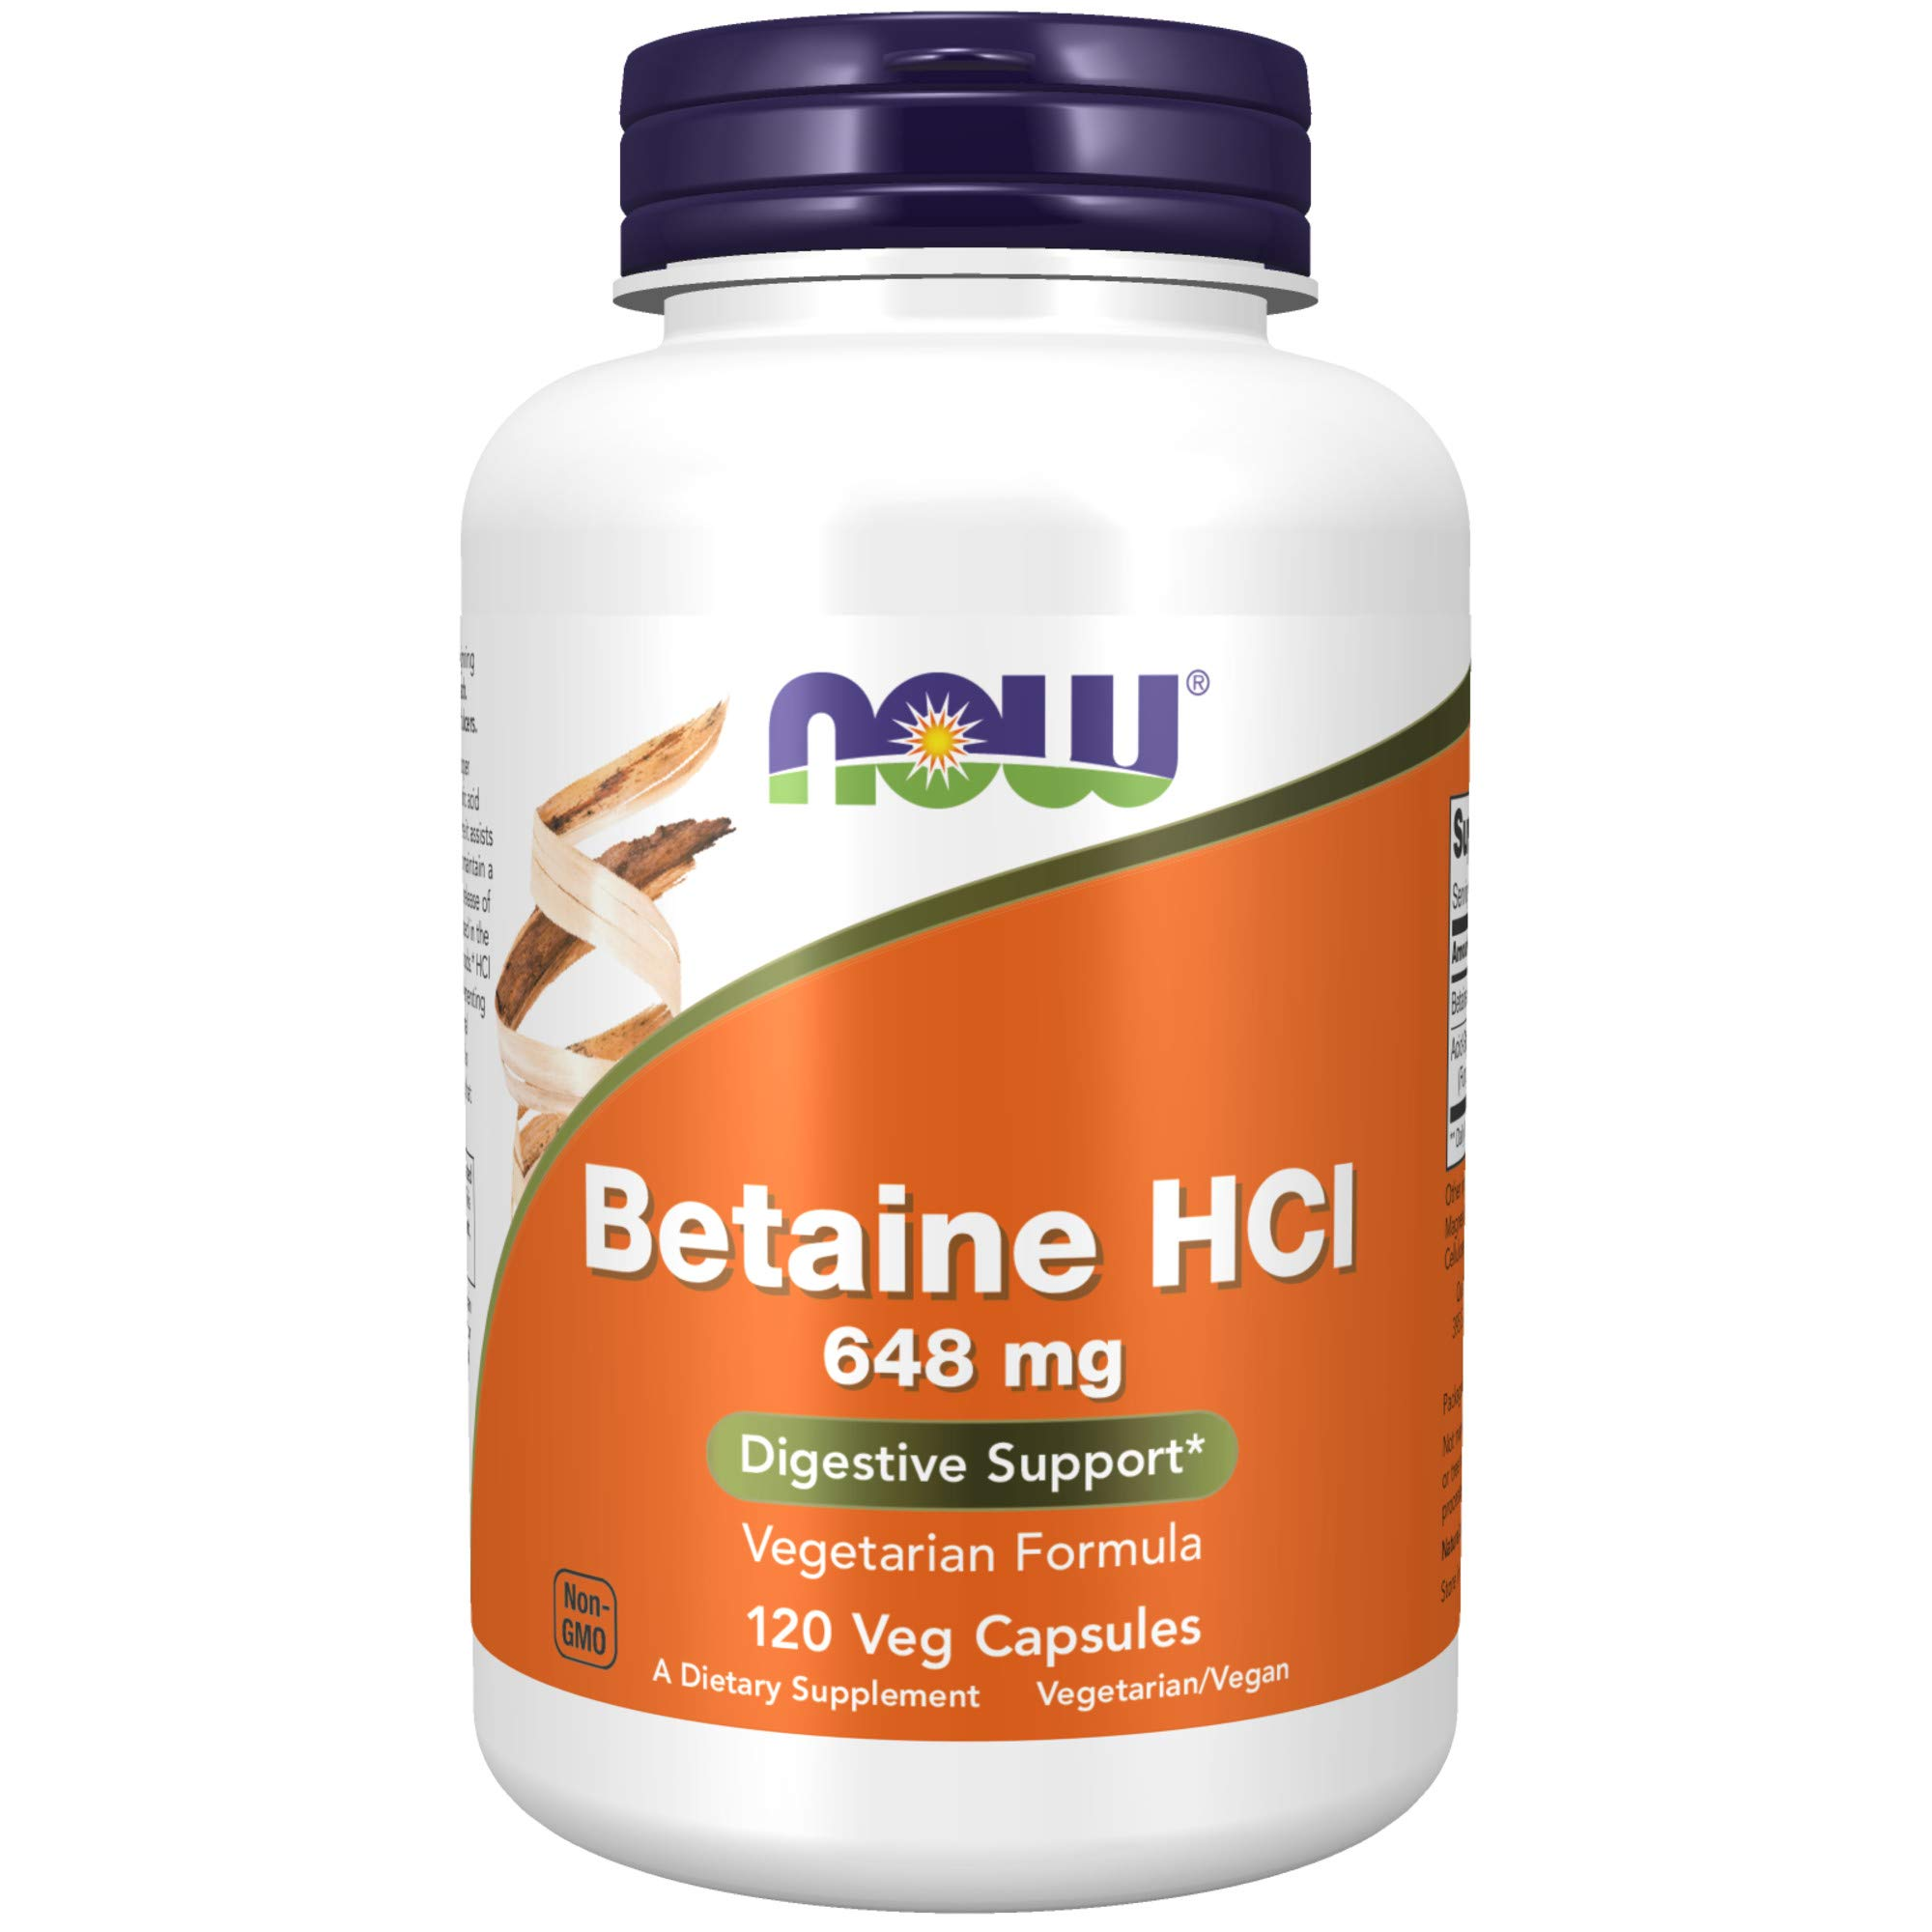 Now Foods Supplements, Betaine HCl 648 mg, Vegetarian Formula, Digestive Support, 120 Veg Capsules, 4.2329 Ounce